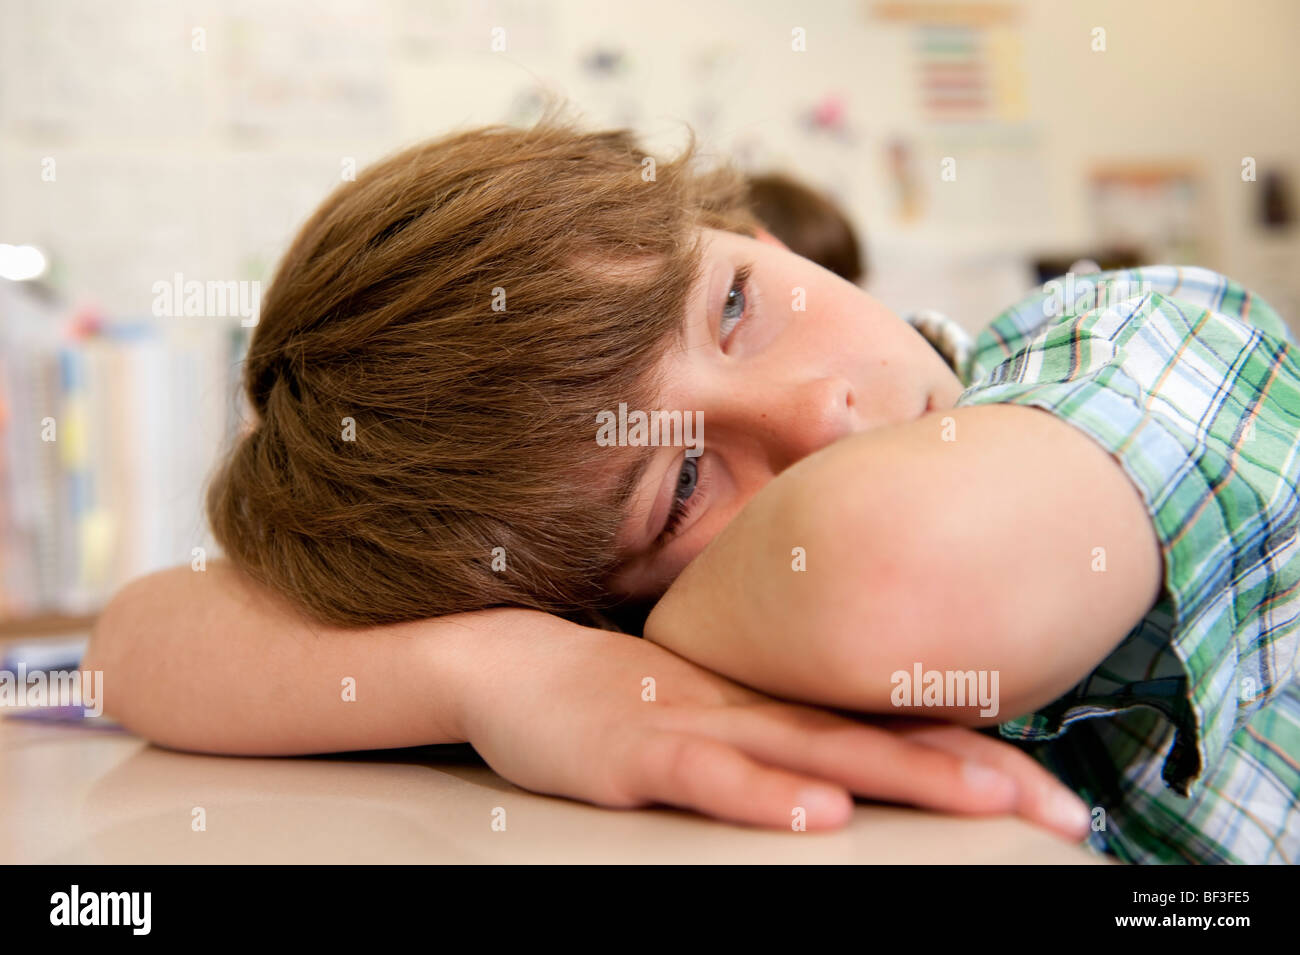 Student Resting during class - Stock Image